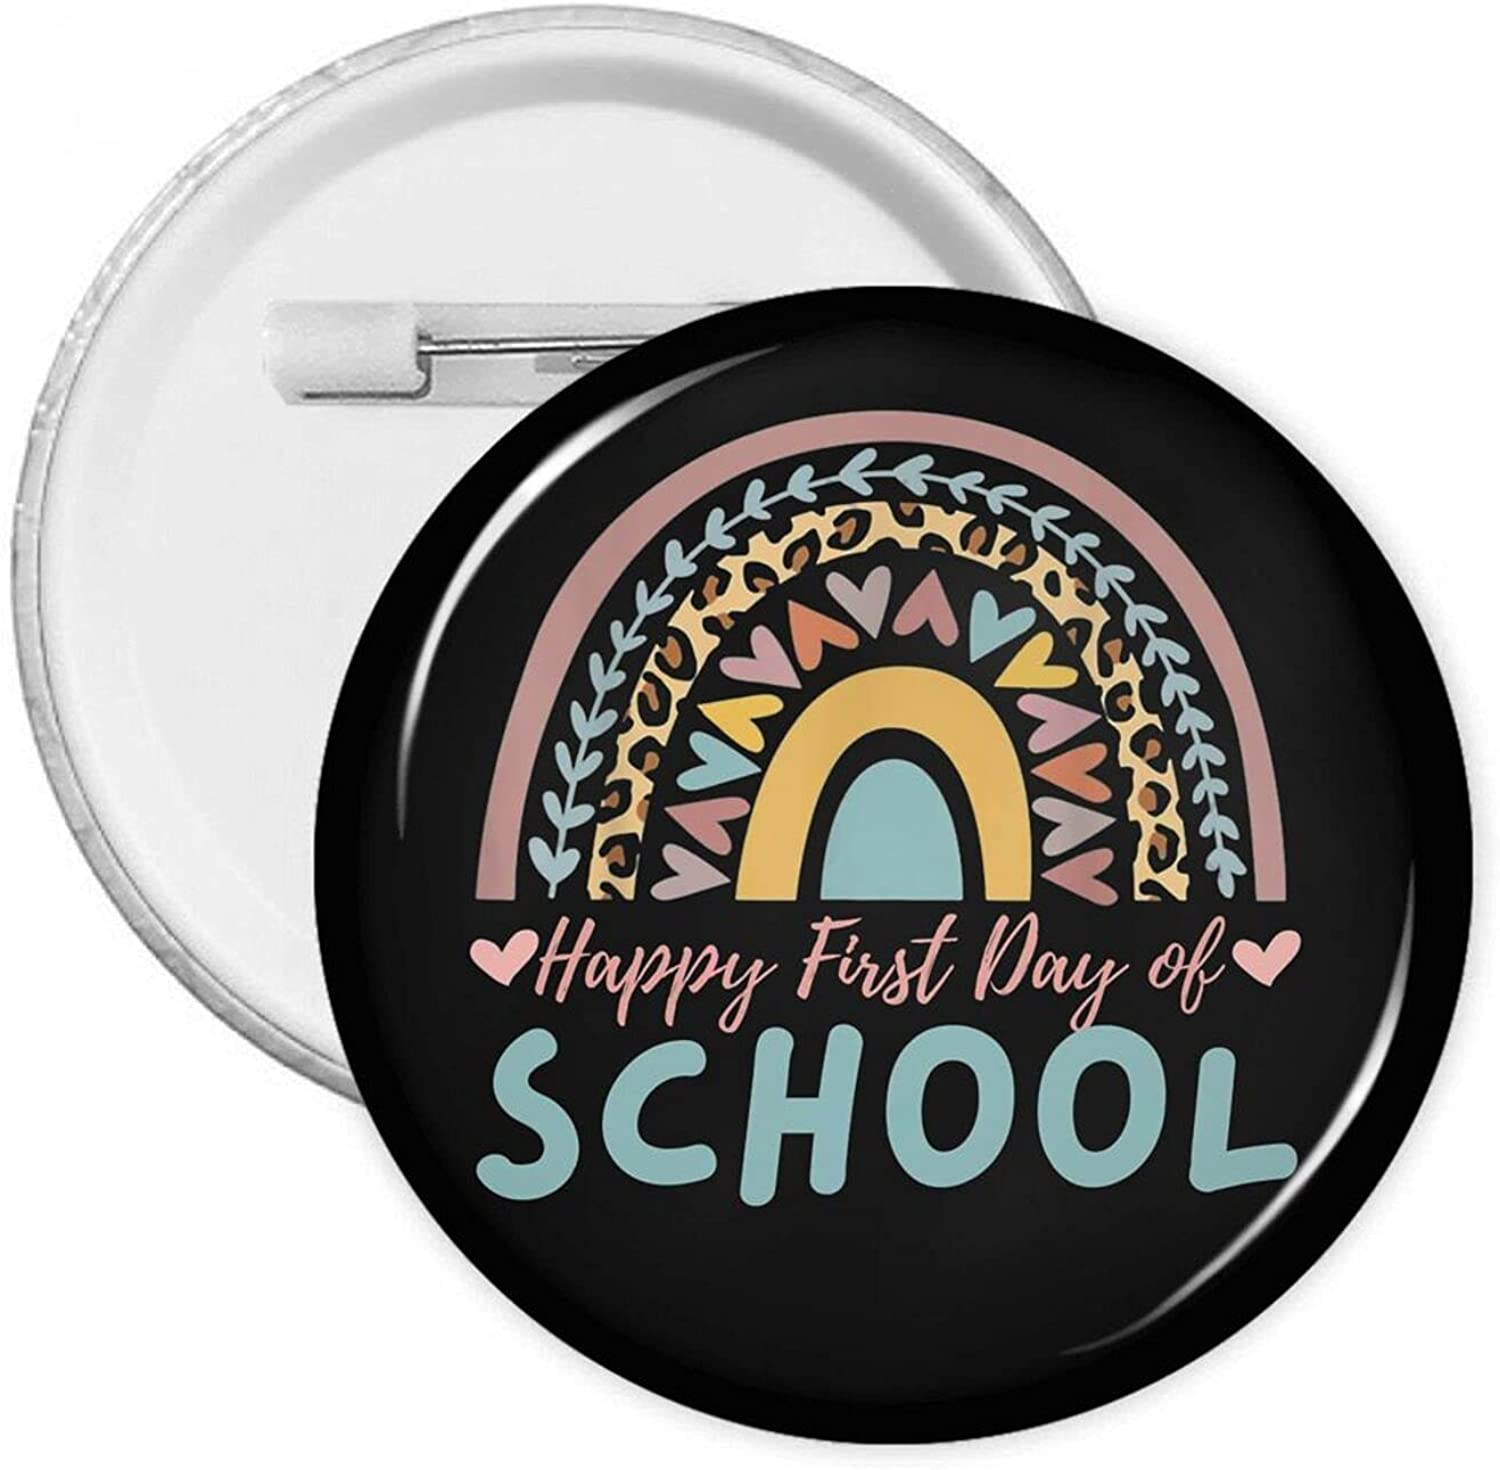 Rainbow Happy First Day Of School Pins Round Button Badges With Super intense Free shipping SALE